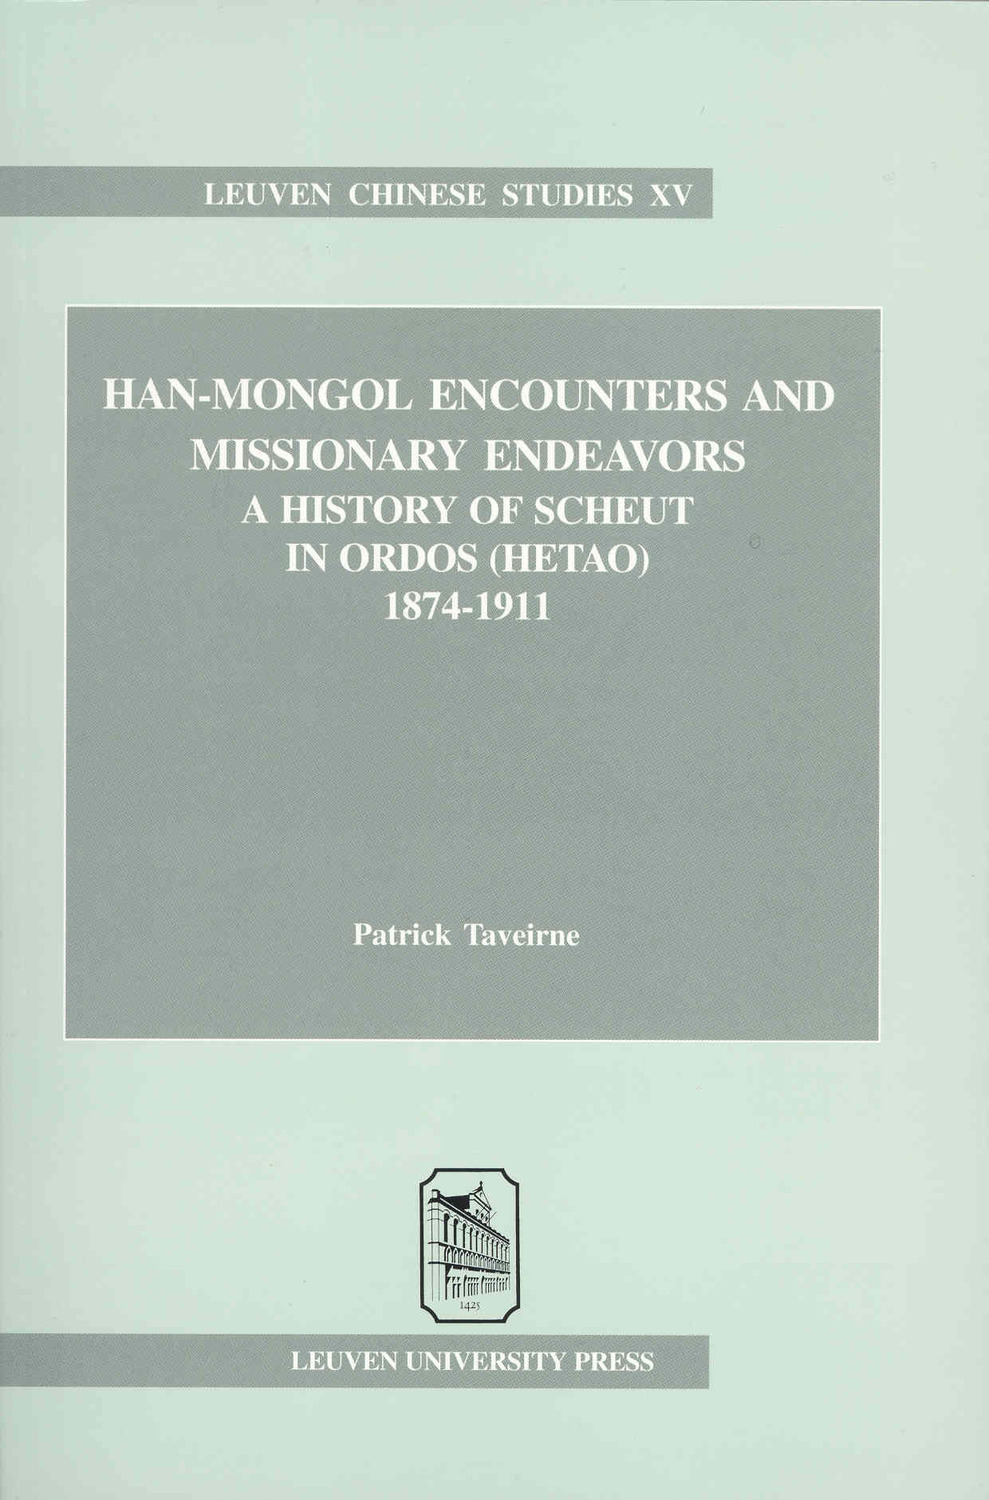 Han-Mongol Encounters and Missionary Endeavors